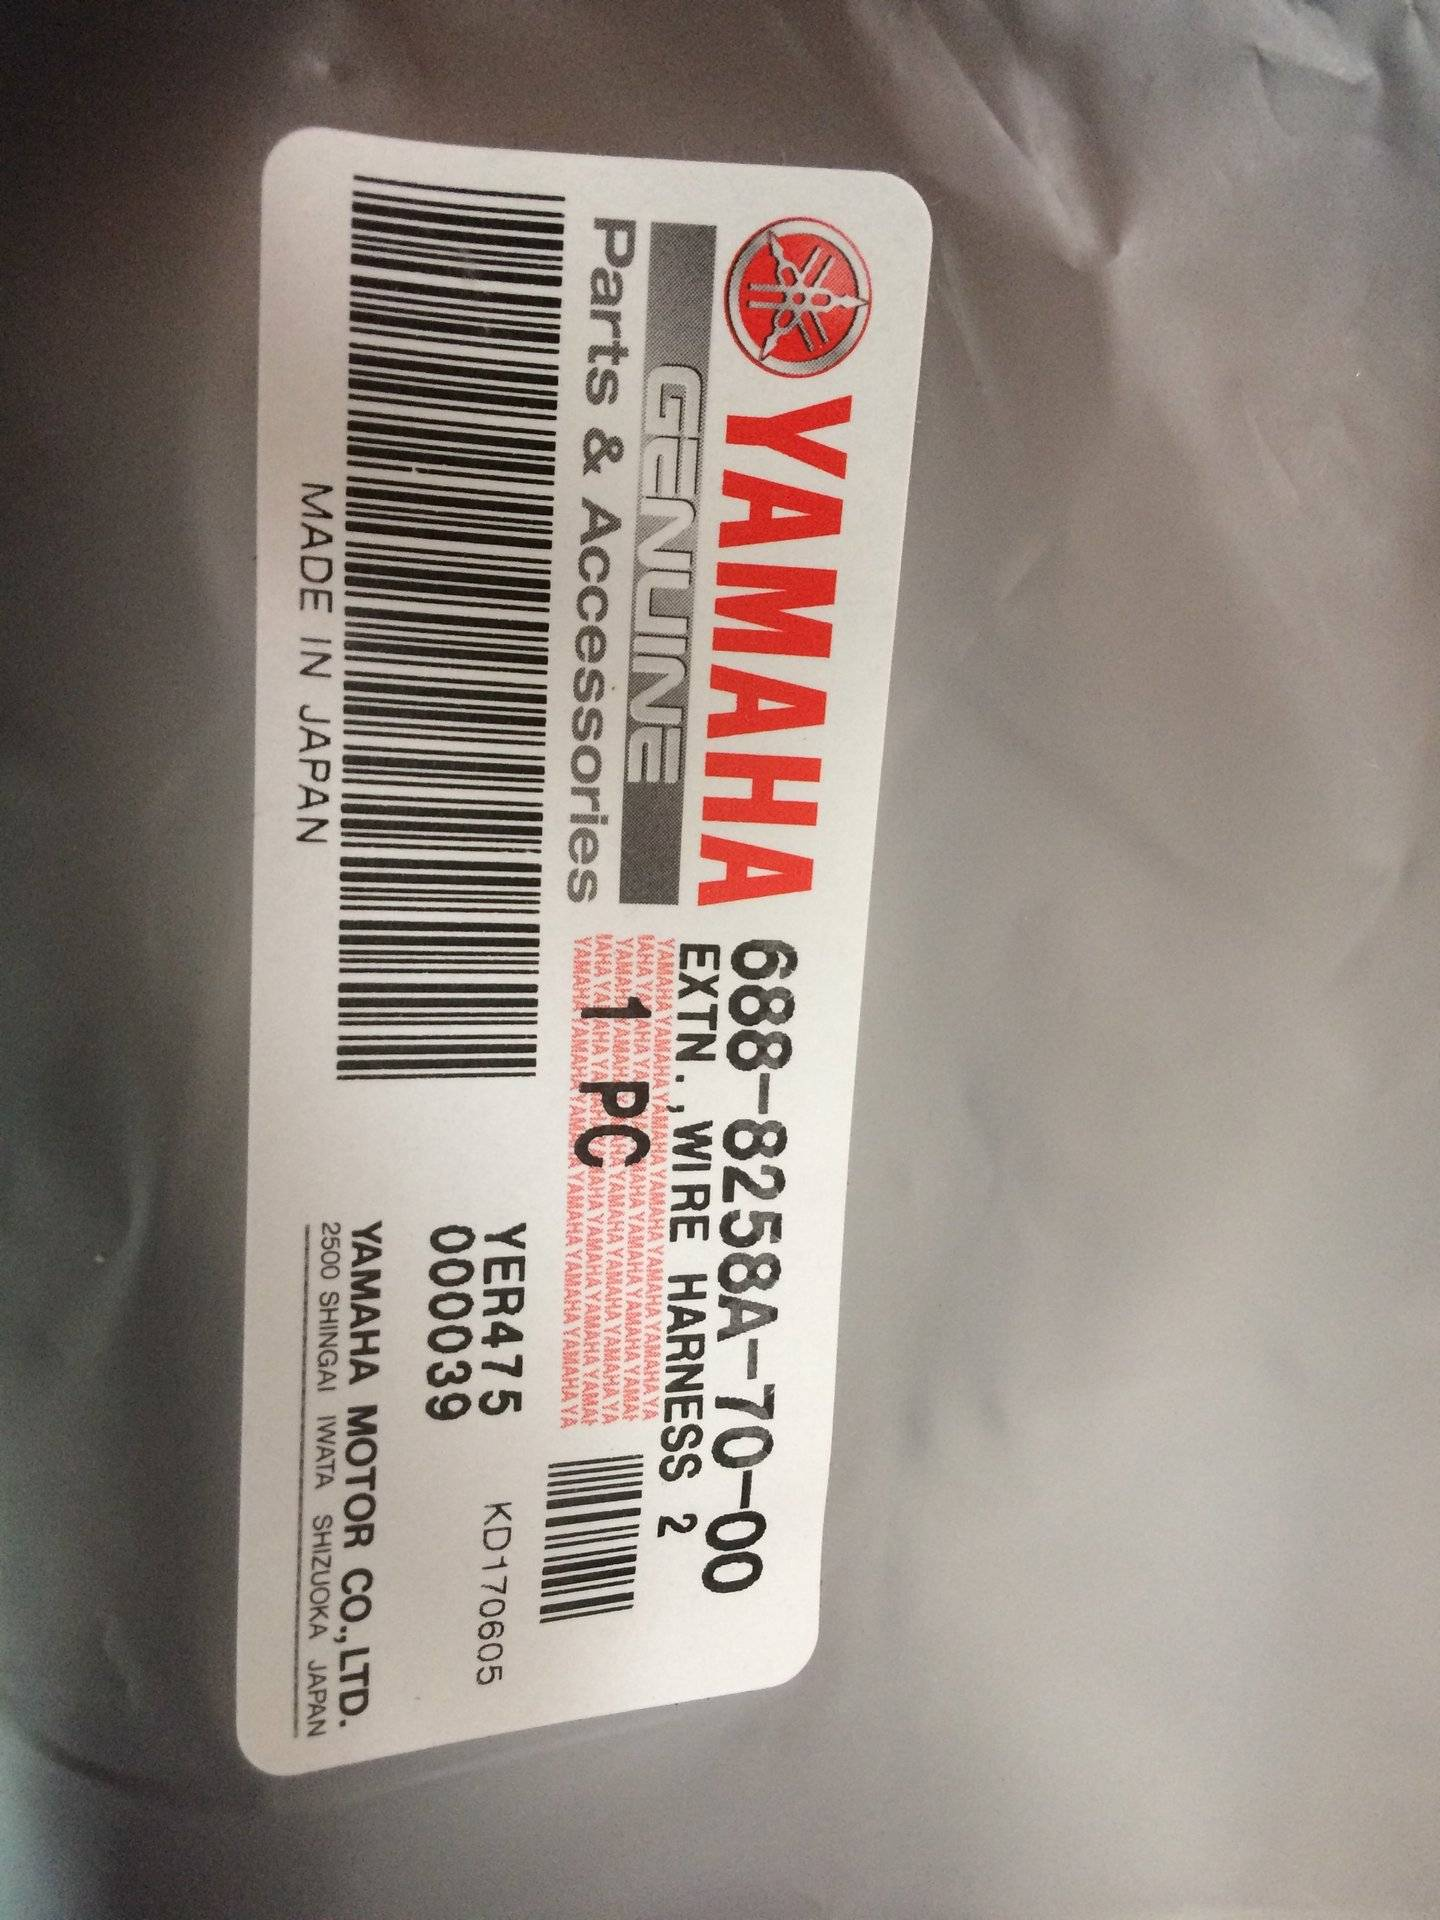 Sold Yamaha Outboard Wire Harness Bloodydecks I Have A Brand New 10 Pin 23 Part Number 688 8258a 70 00 This Is The Cable That Connects Outboards To Key Switch And